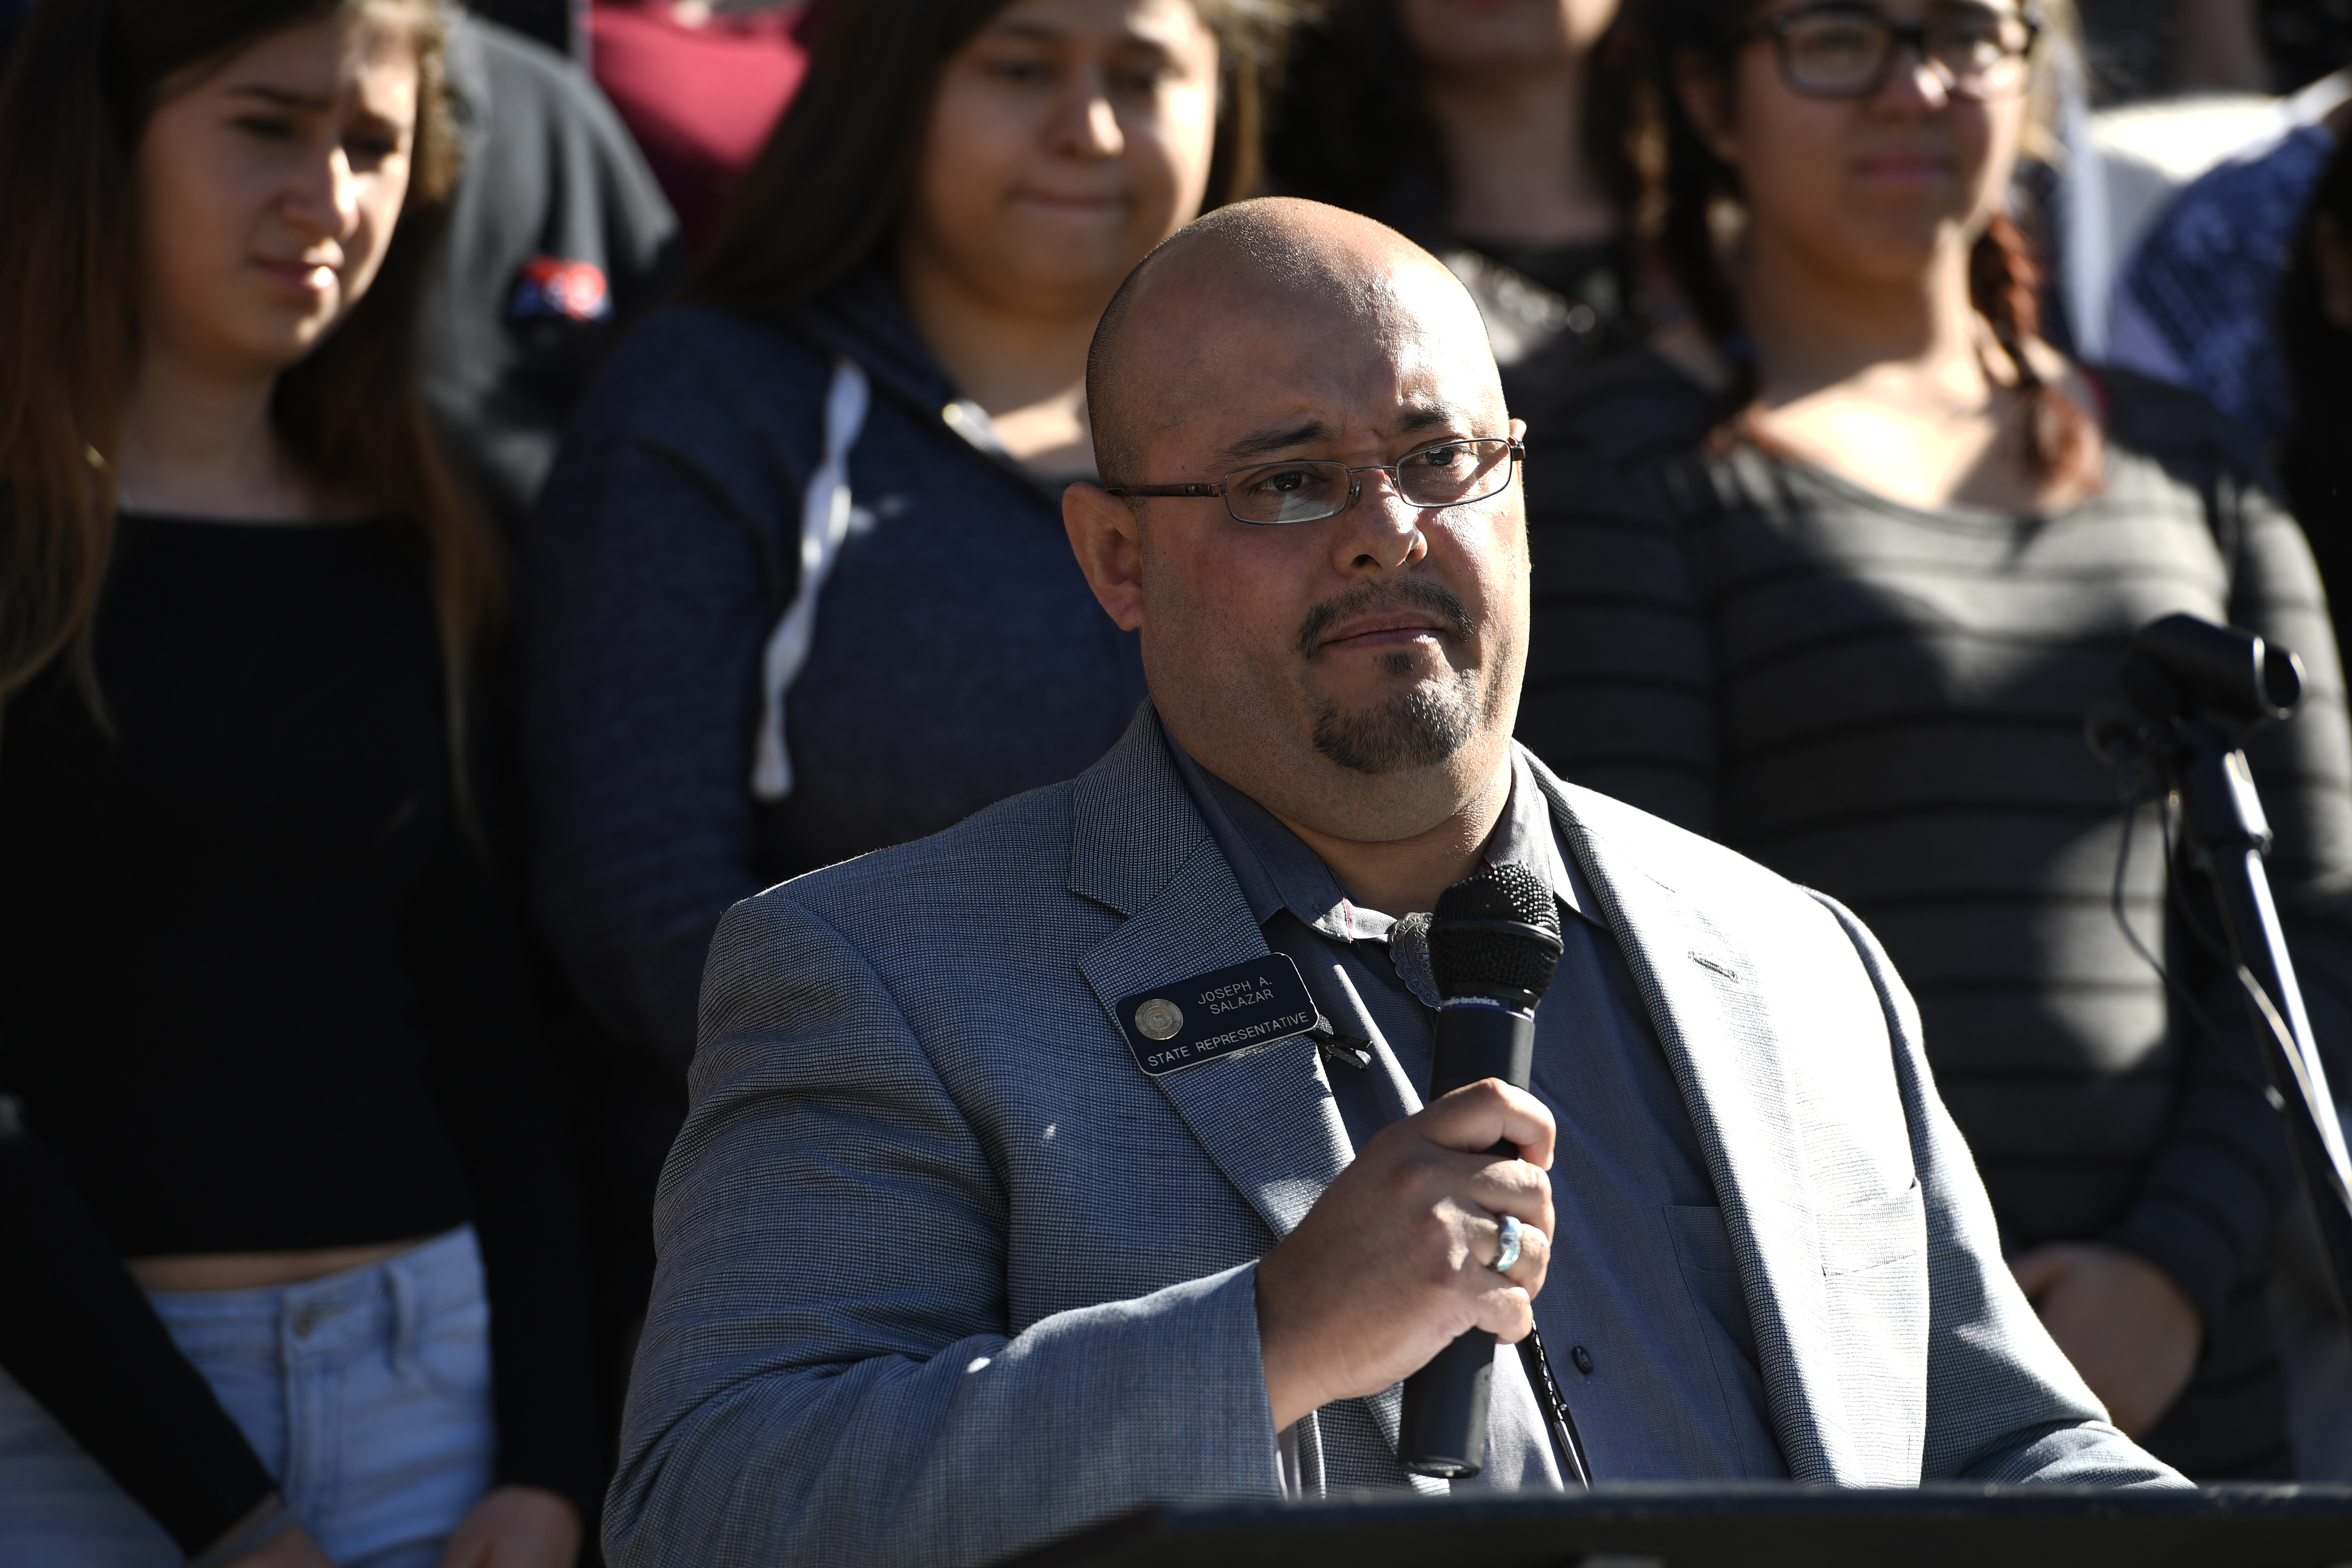 State Rep. Joseph Salazar during the rally on Nov. 10, 2016 (credit: John Leyba/The Denver Post via Getty Images)